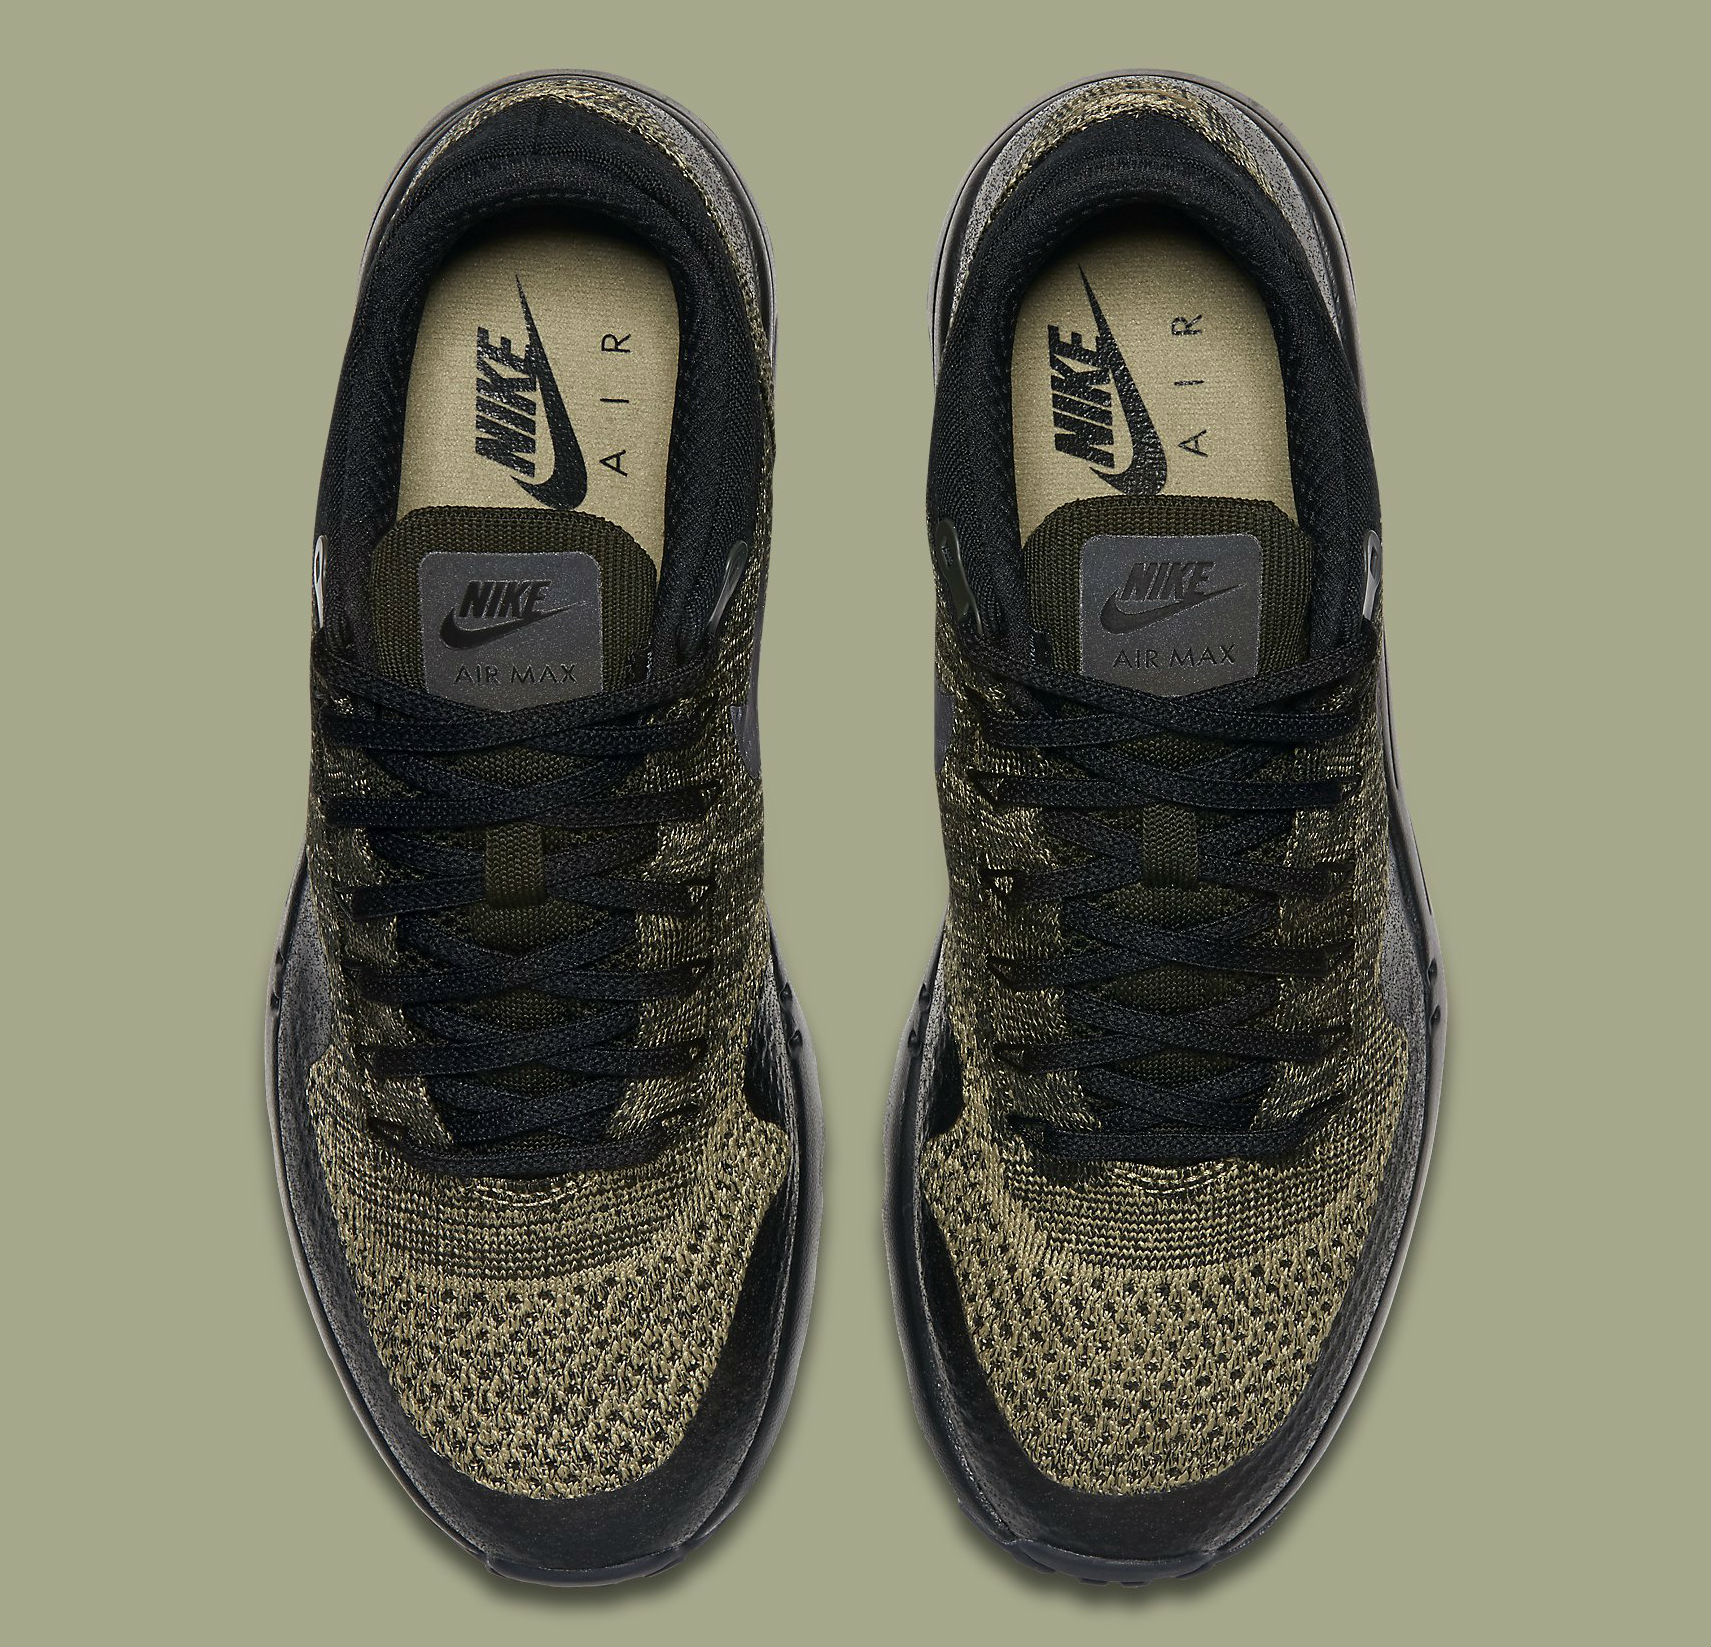 Nike Air Max 1 Ultra Flyknit Neutral Olive Black-Sequoia 856958-203 ... bec0990c2